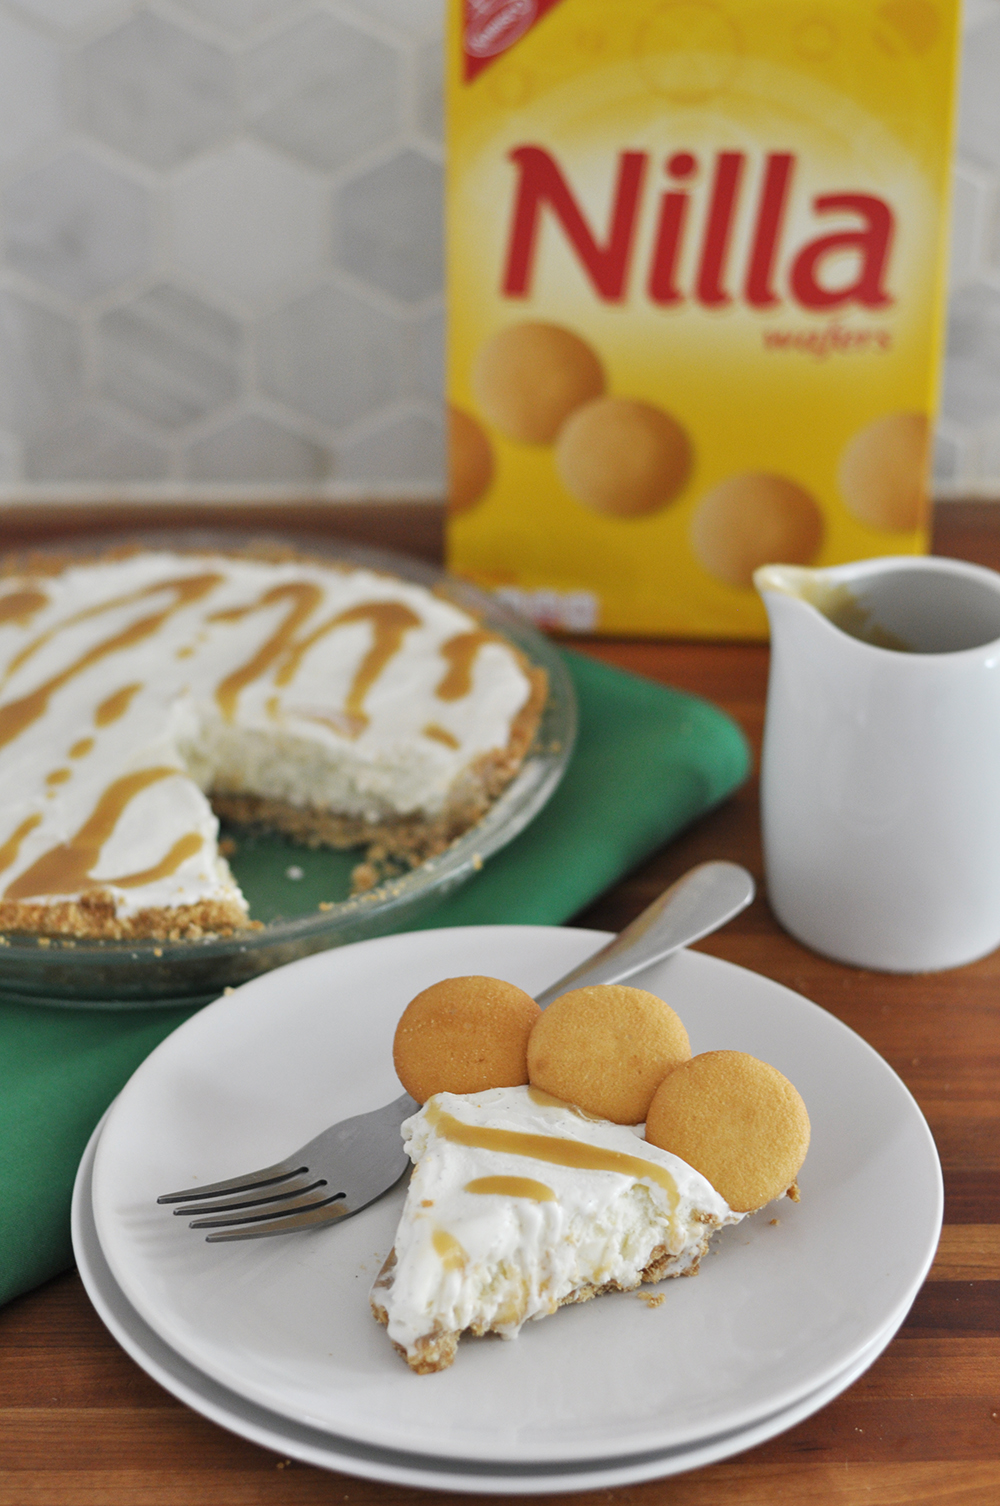 The easiest most decadent pie ever: vanilla ice cream in a NILLA wafer crust drizzled with homemade butterscotch sauce